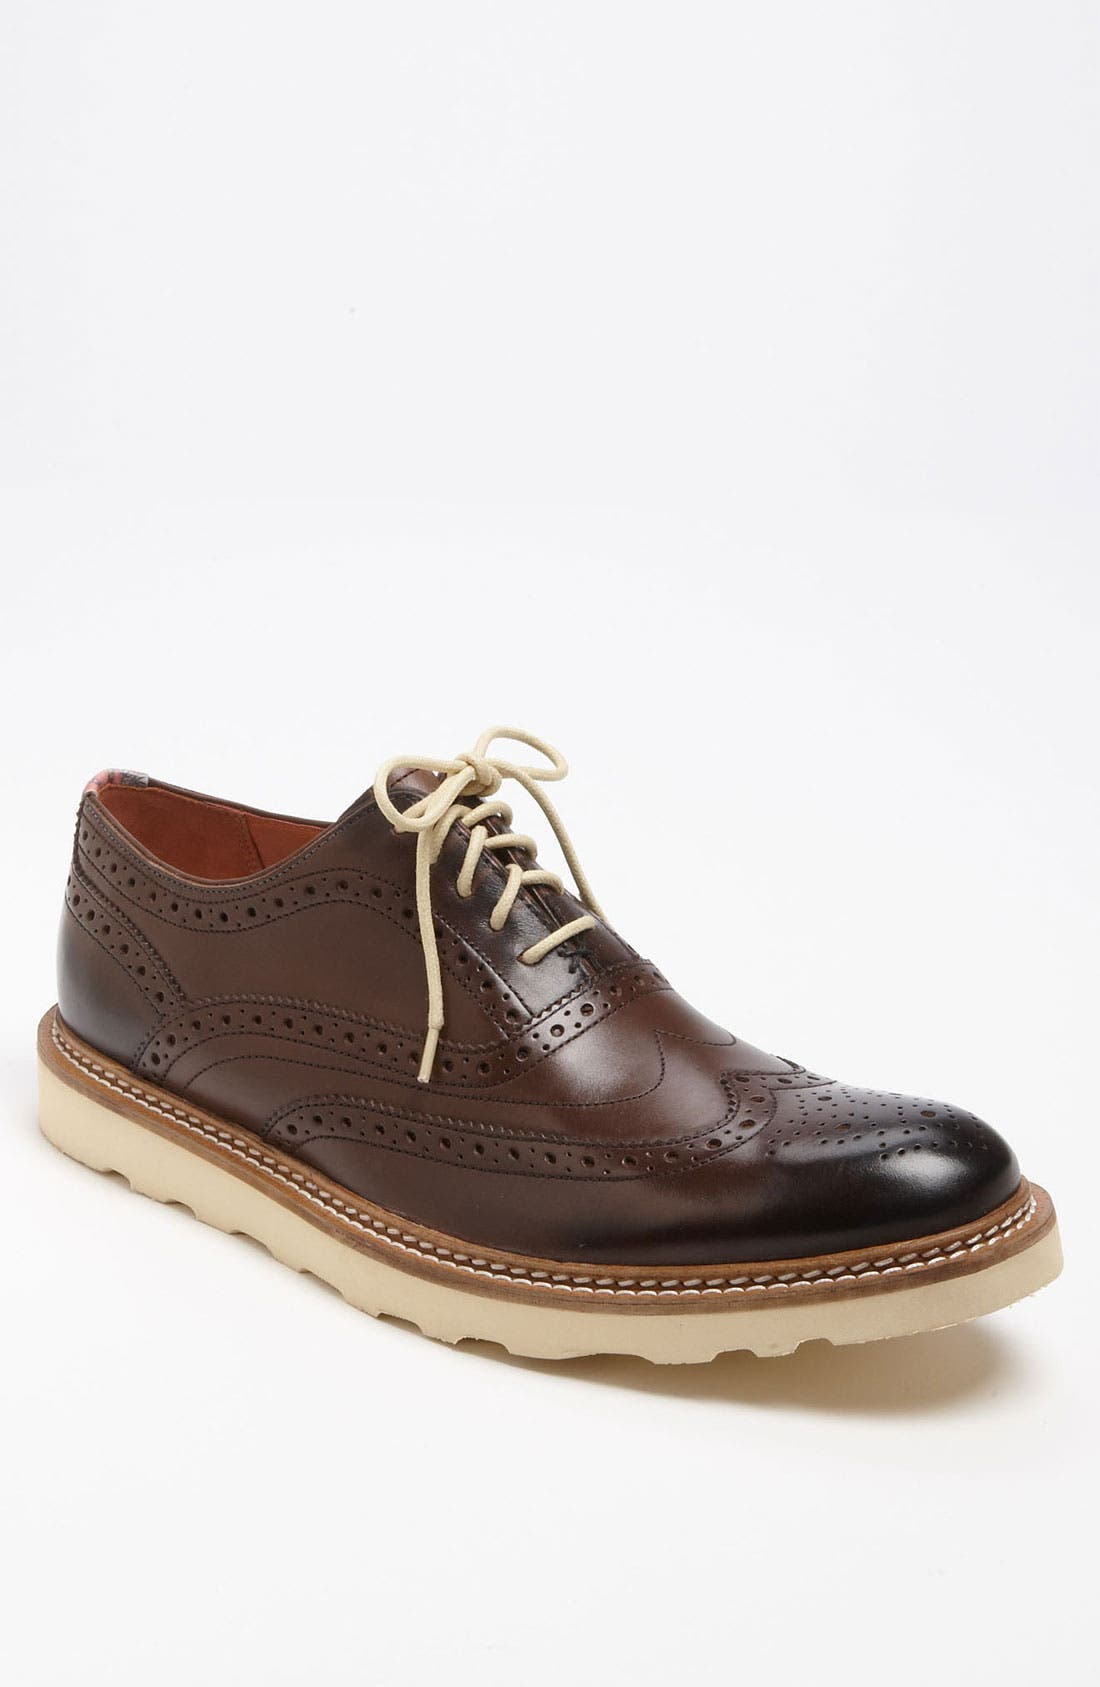 Alternate Image 1 Selected - Ted Baker London 'Gonys' Wingtip Oxford